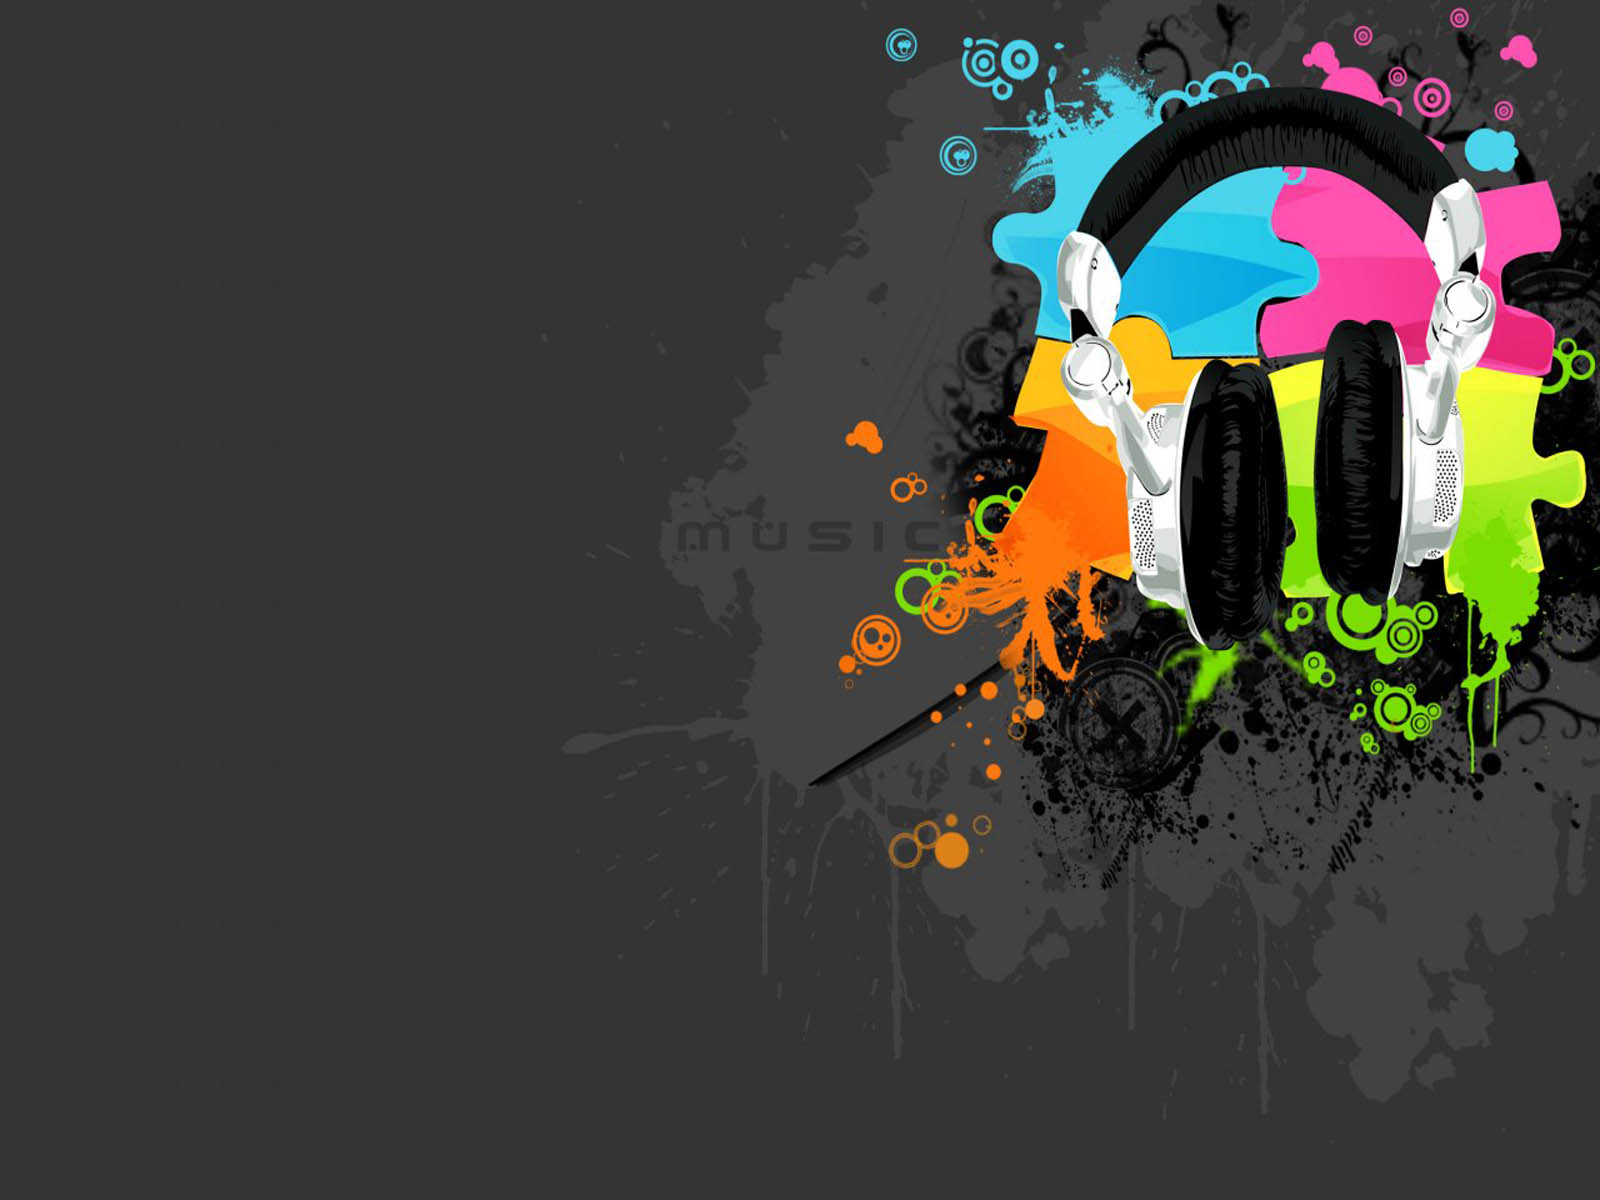 wallpapers Abstract Music Wallpapers 1600x1200